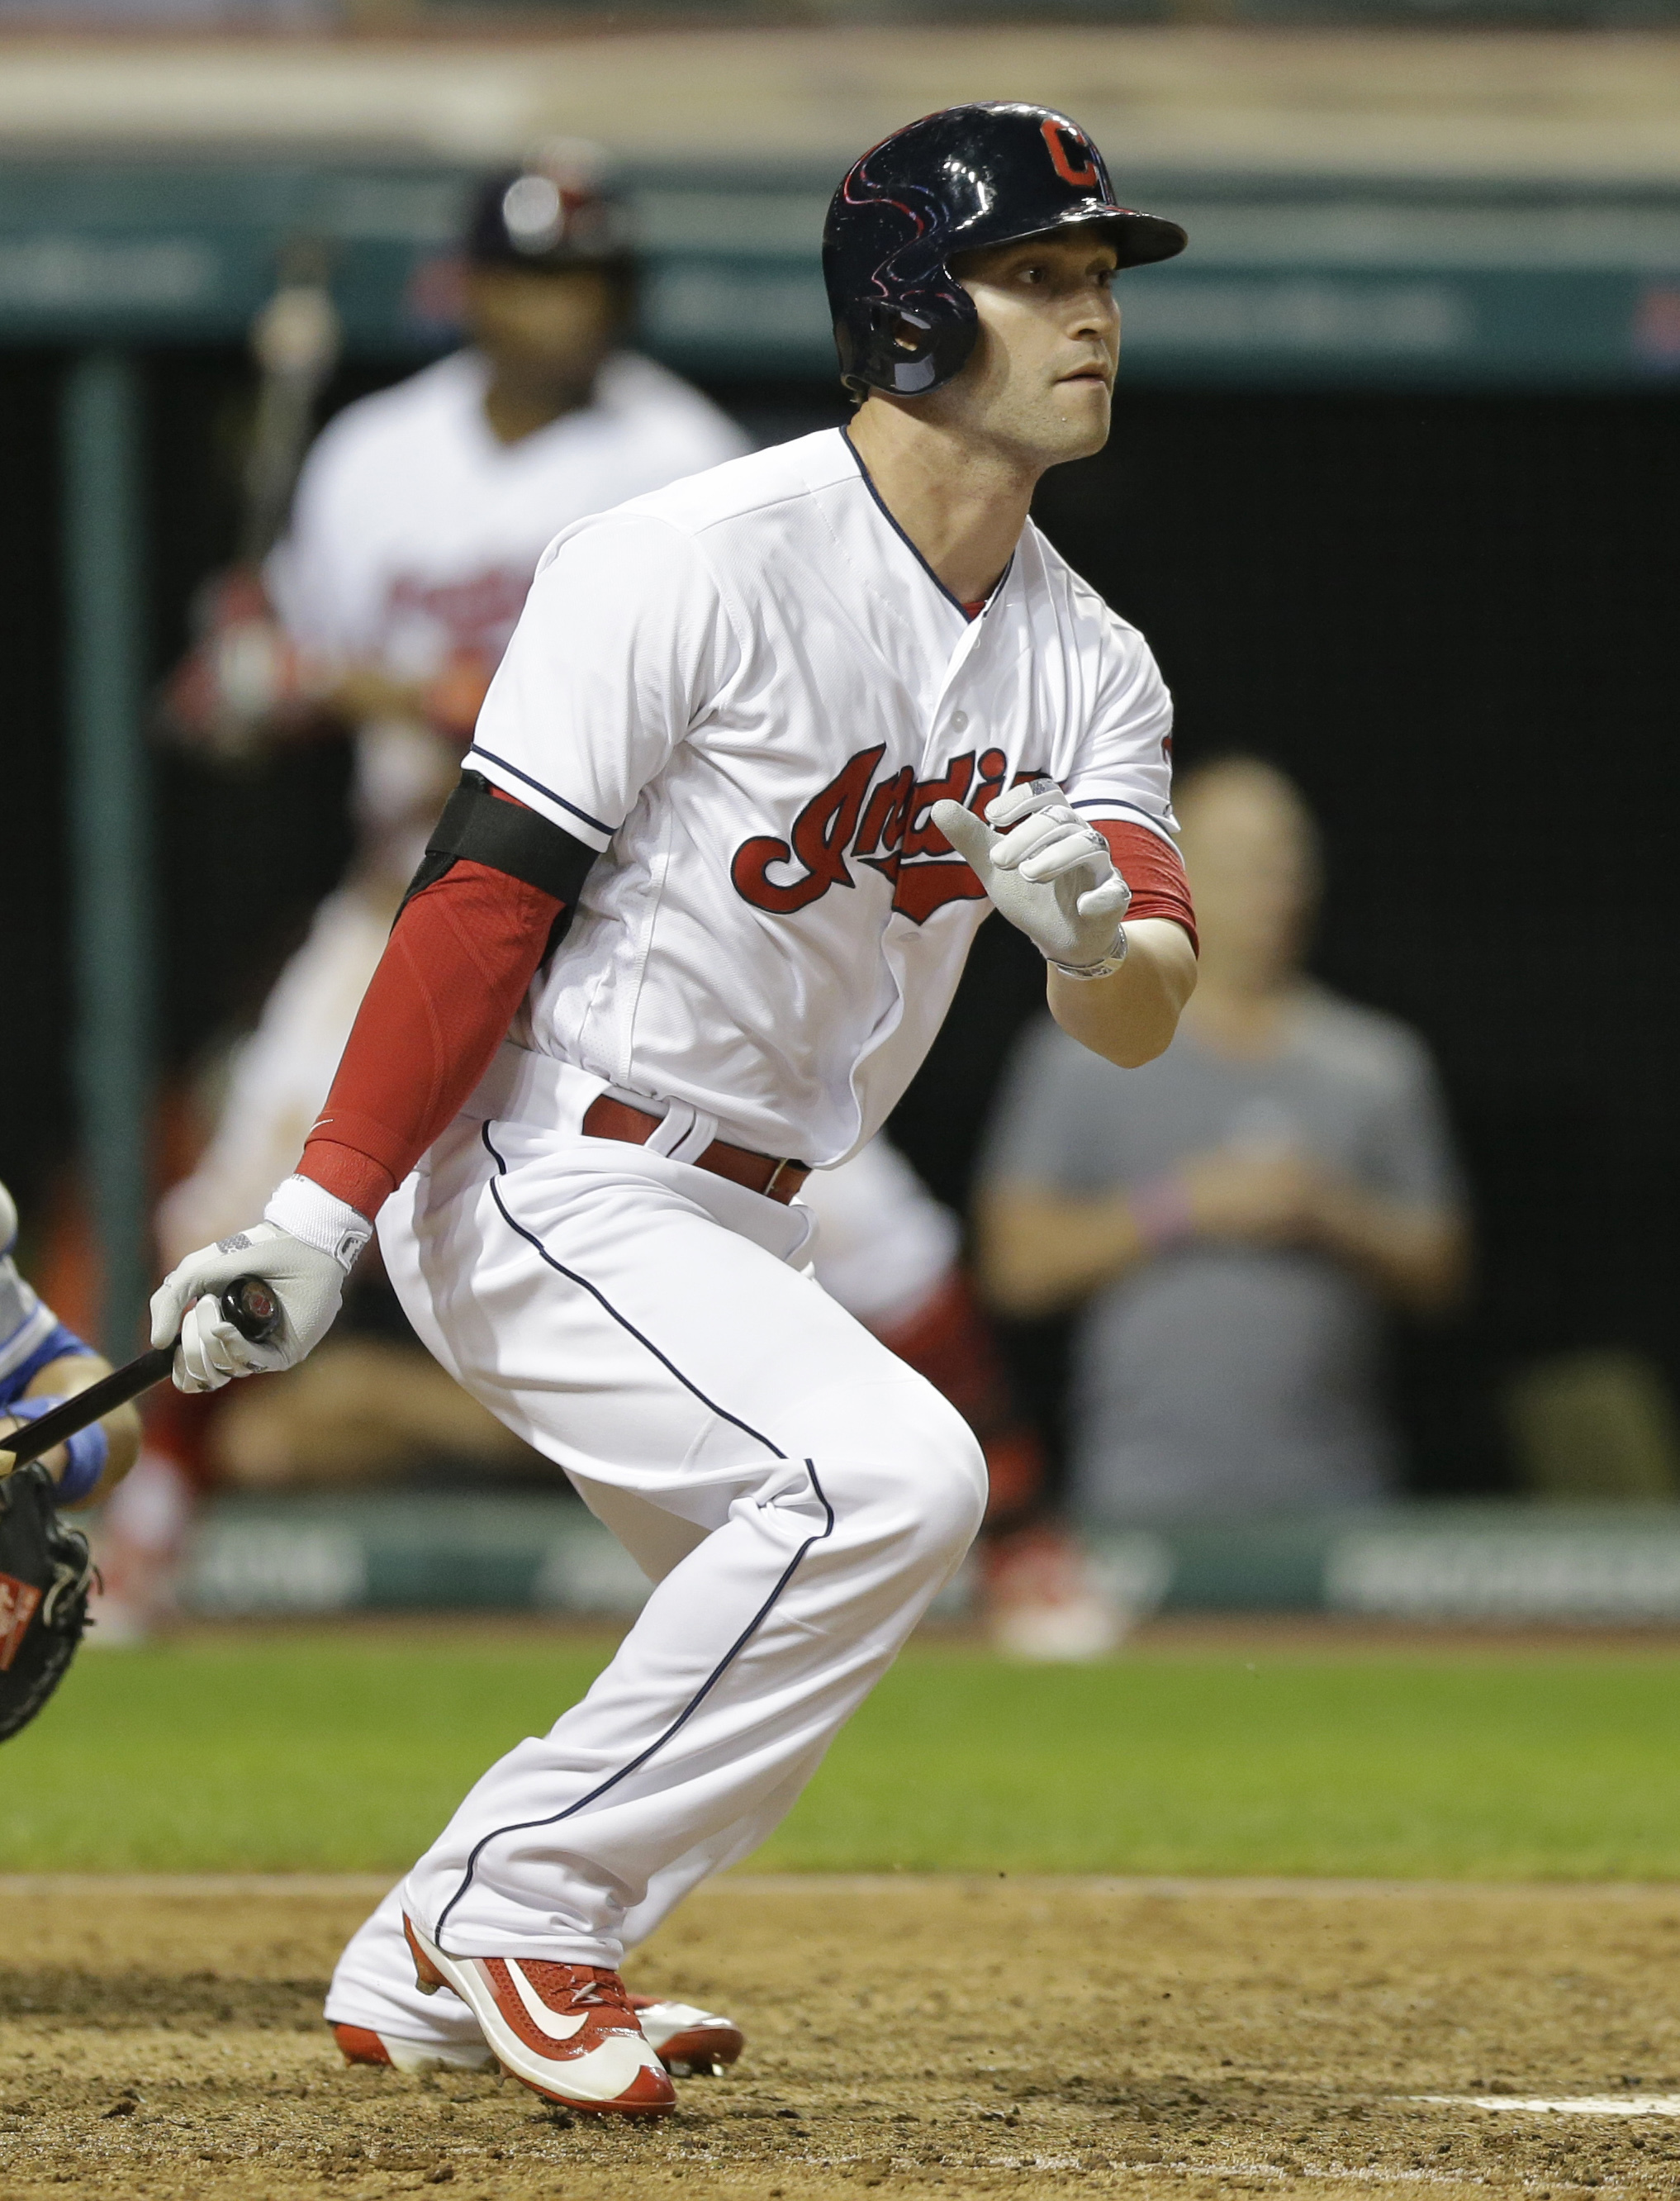 Cleveland Indians' Tyler Naquin watches his RBI single off Kansas City Royals relief pitcher Kelvin Herrera during the eighth inning of a baseball game, Thursday, June 2, 2016, in Cleveland. (AP Photo/Tony Dejak)